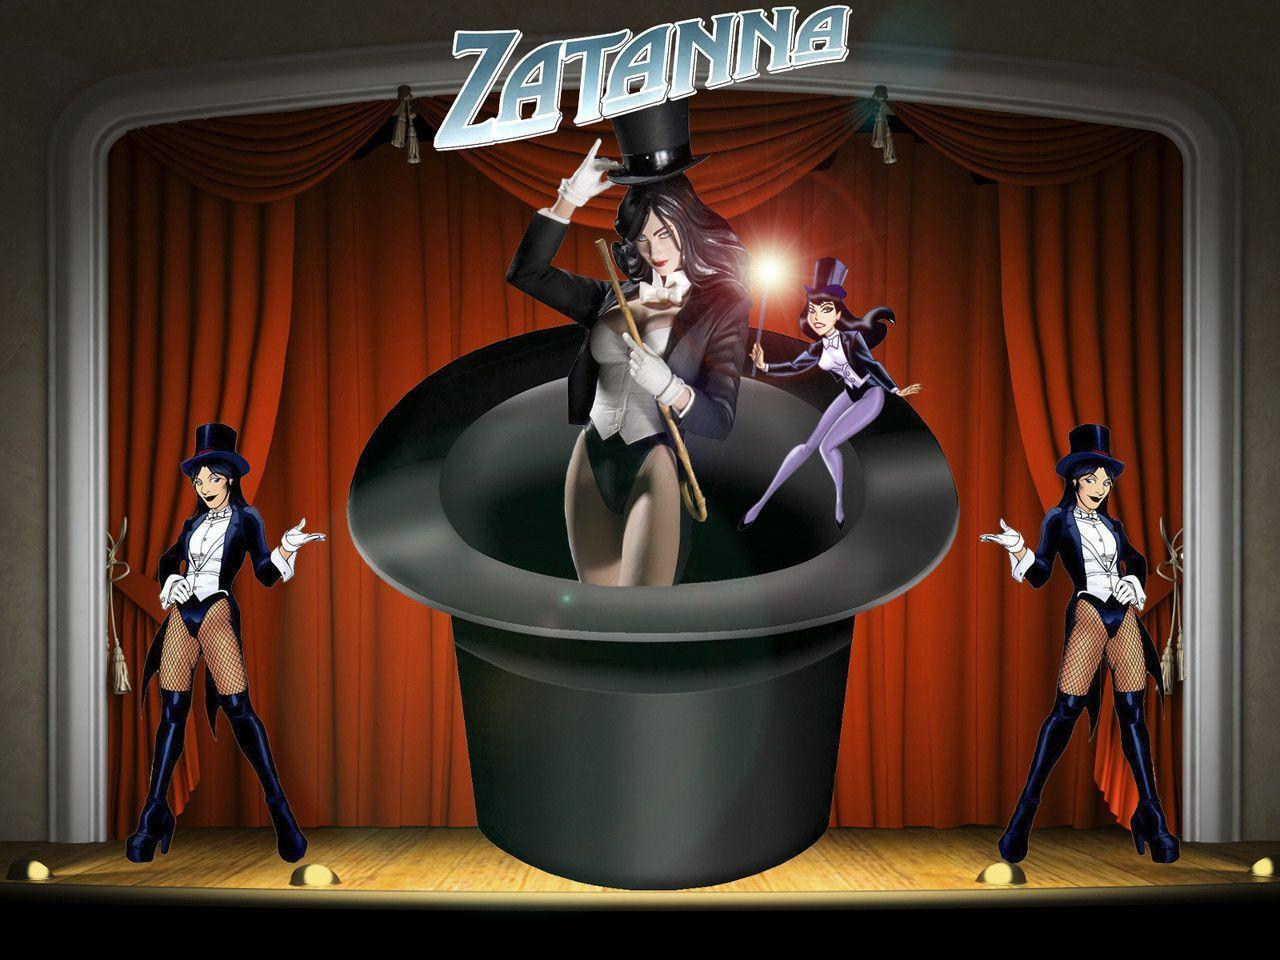 zatanna dc wallpaper - photo #12